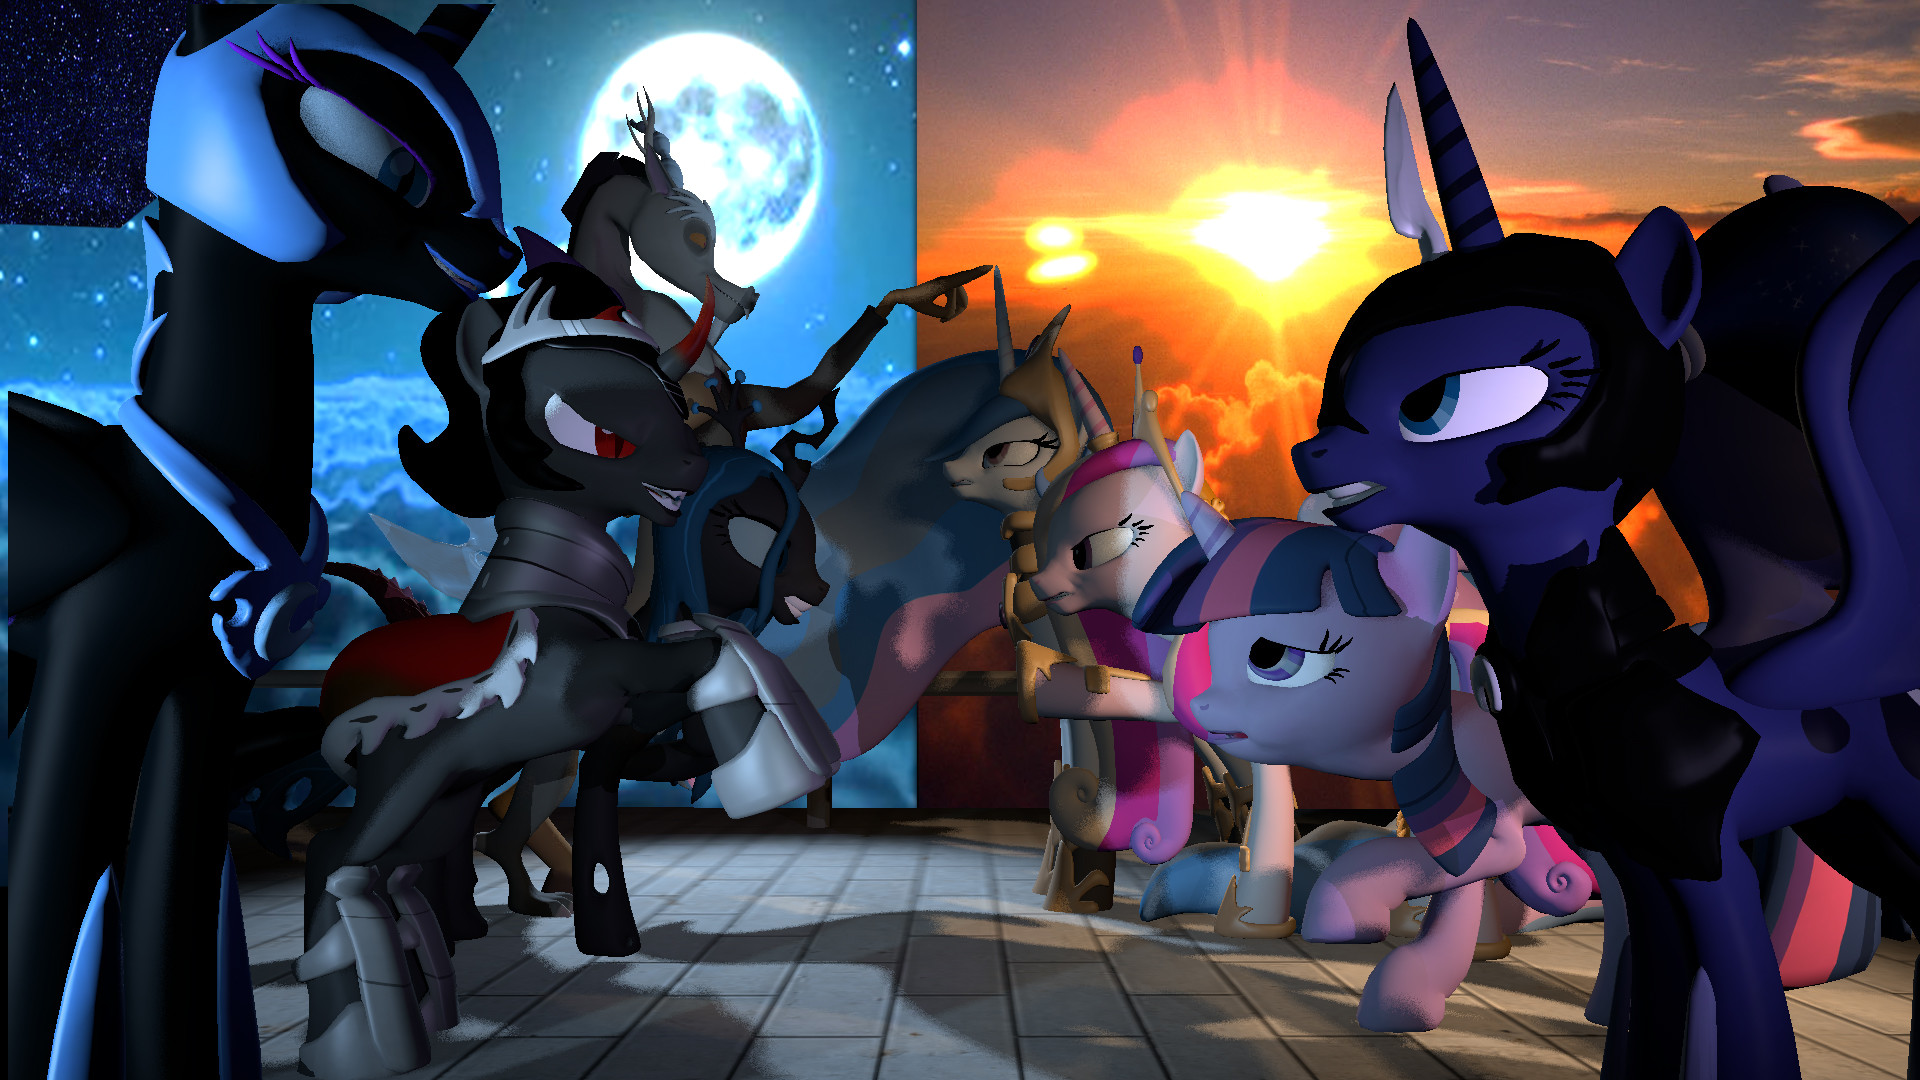 1920x1080 MLP Good Vs Evil by ForsakenKnightmare MLP Good Vs Evil by  ForsakenKnightmare